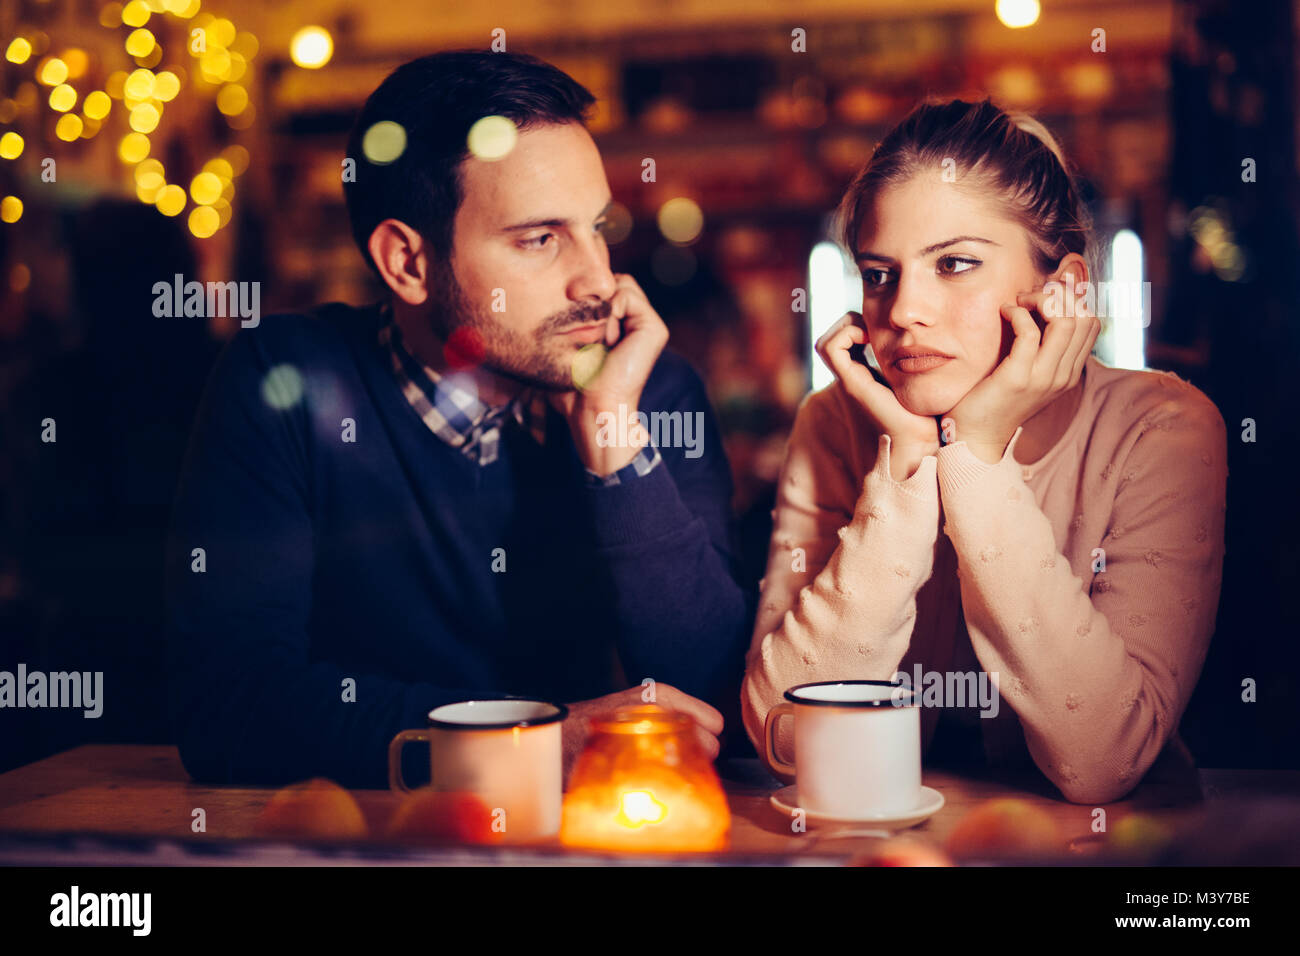 Triste couple having conflits et problèmes de rapport Photo Stock